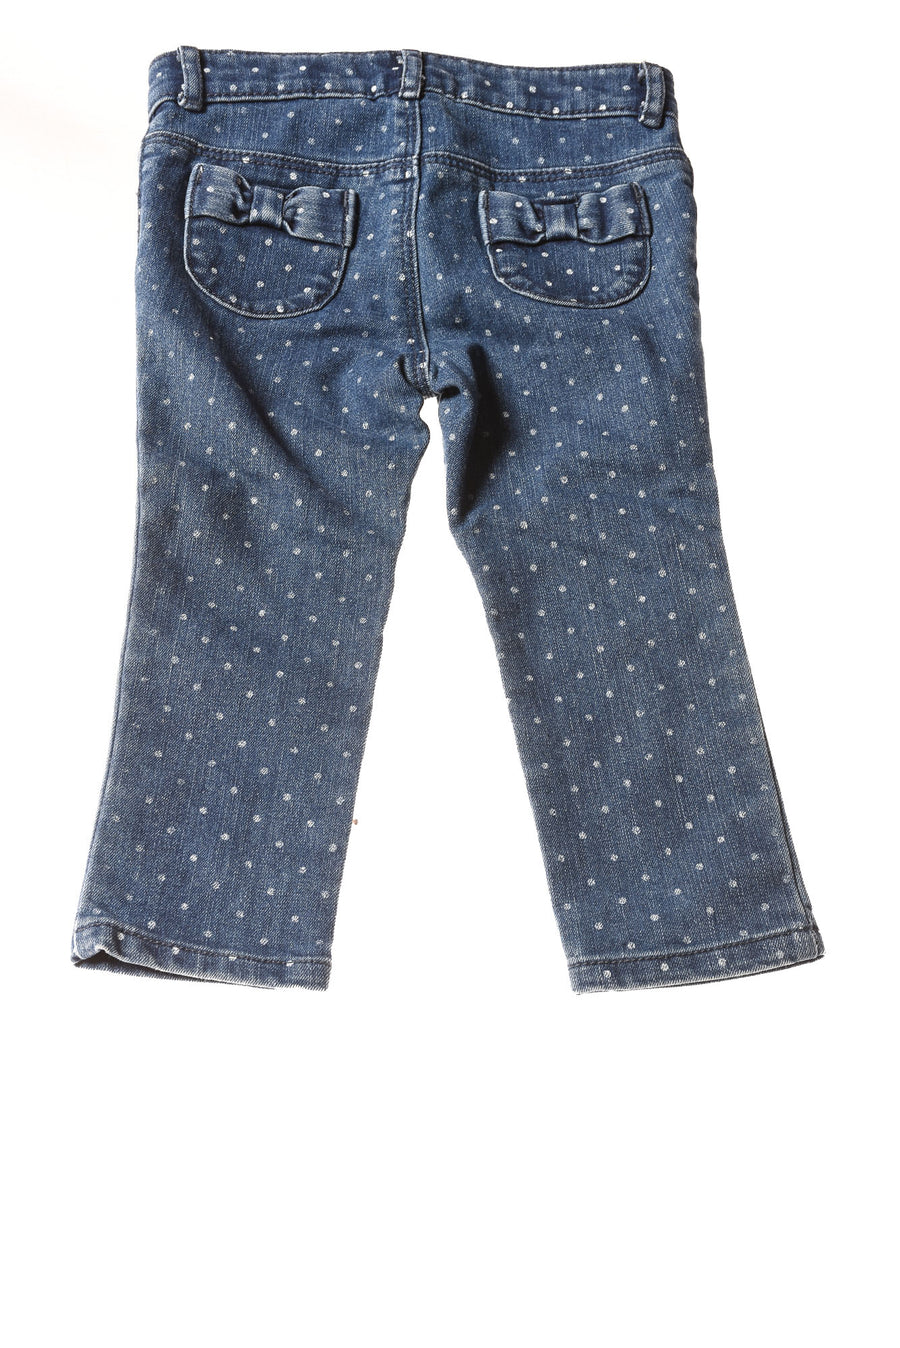 Baby Girl's Jeans By Gymboree